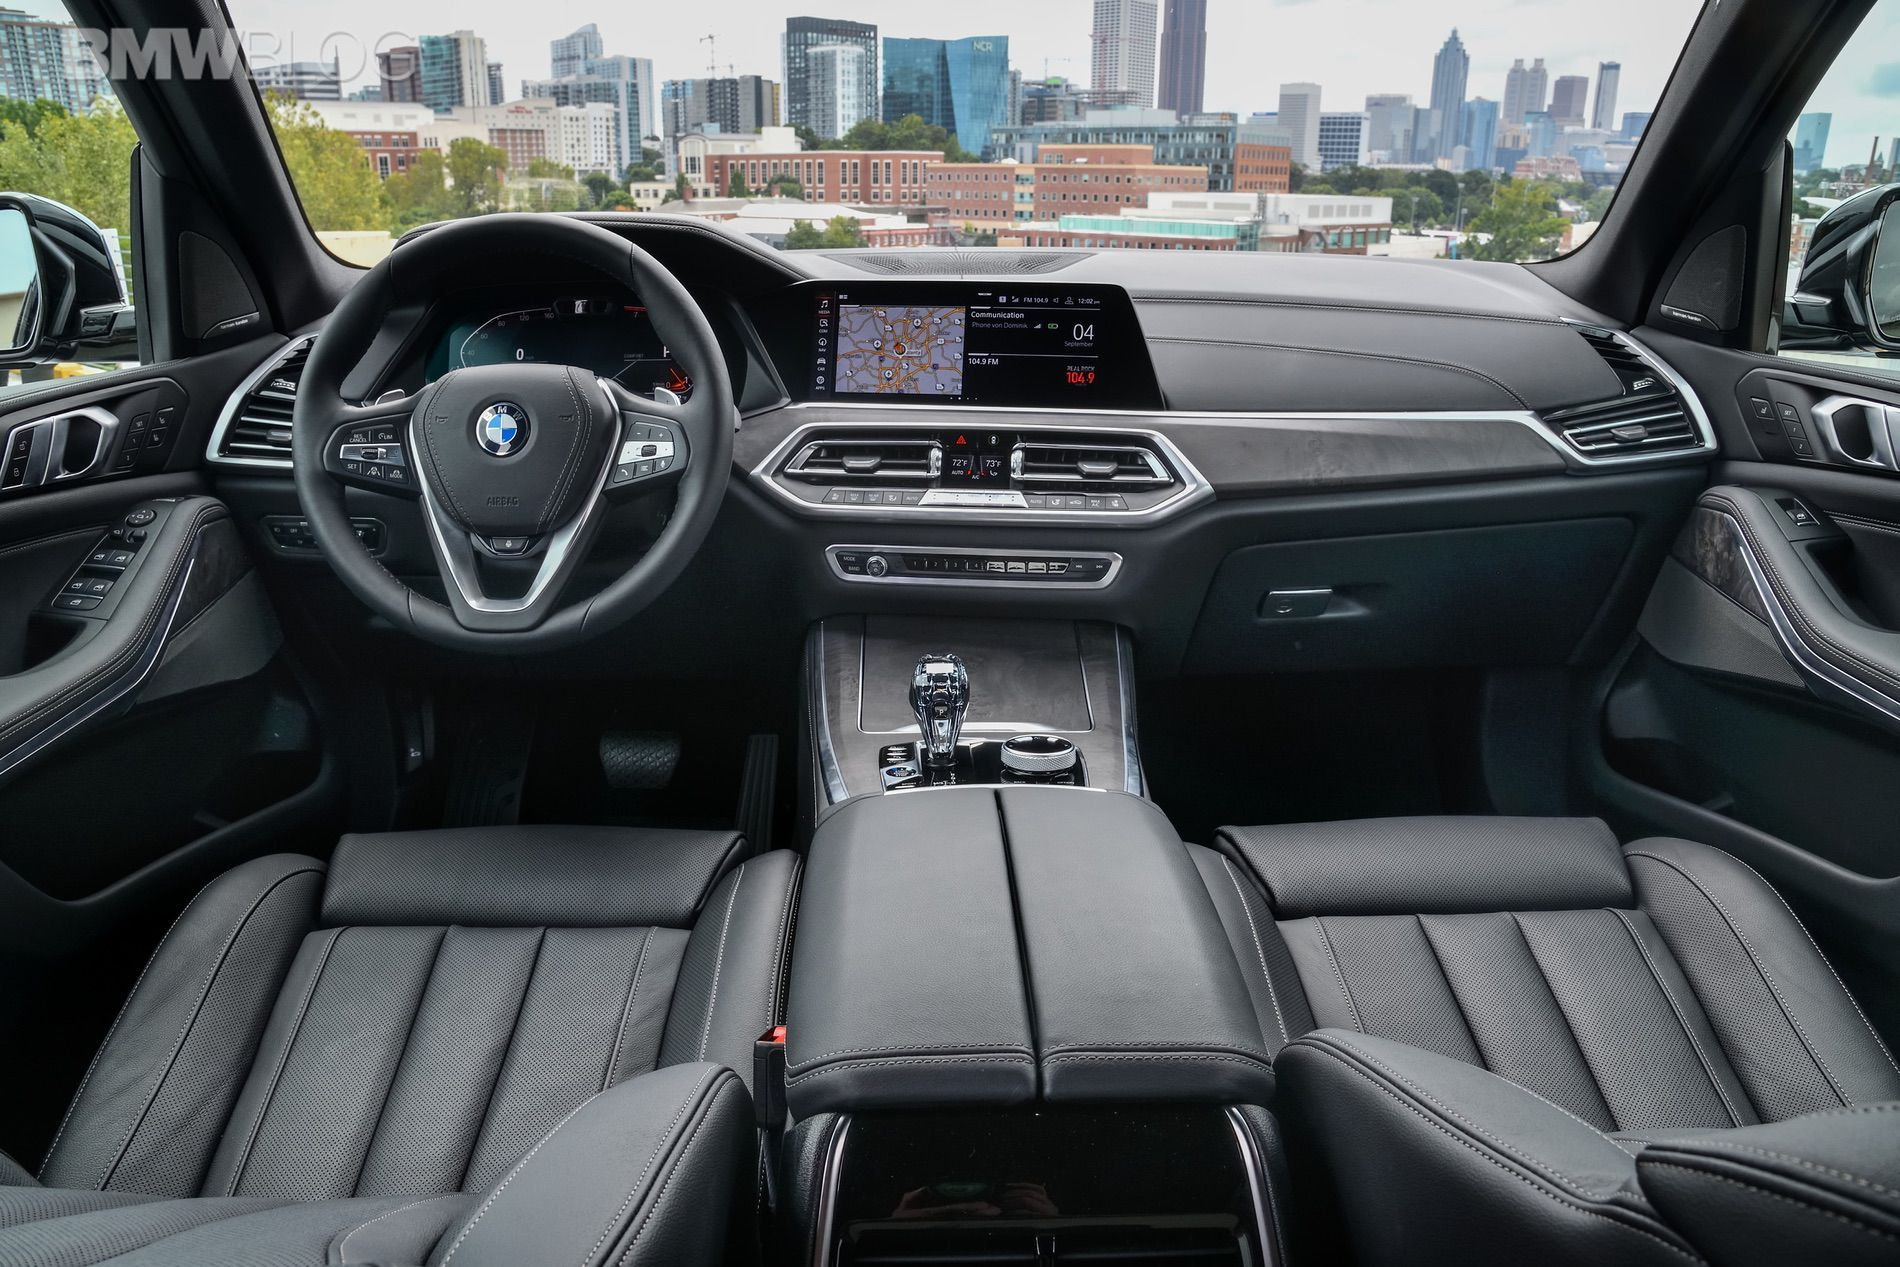 Bmw Designer Describes The Interior Design Of The New Bmw X5 Bmw X5 Bmw Interior New Bmw